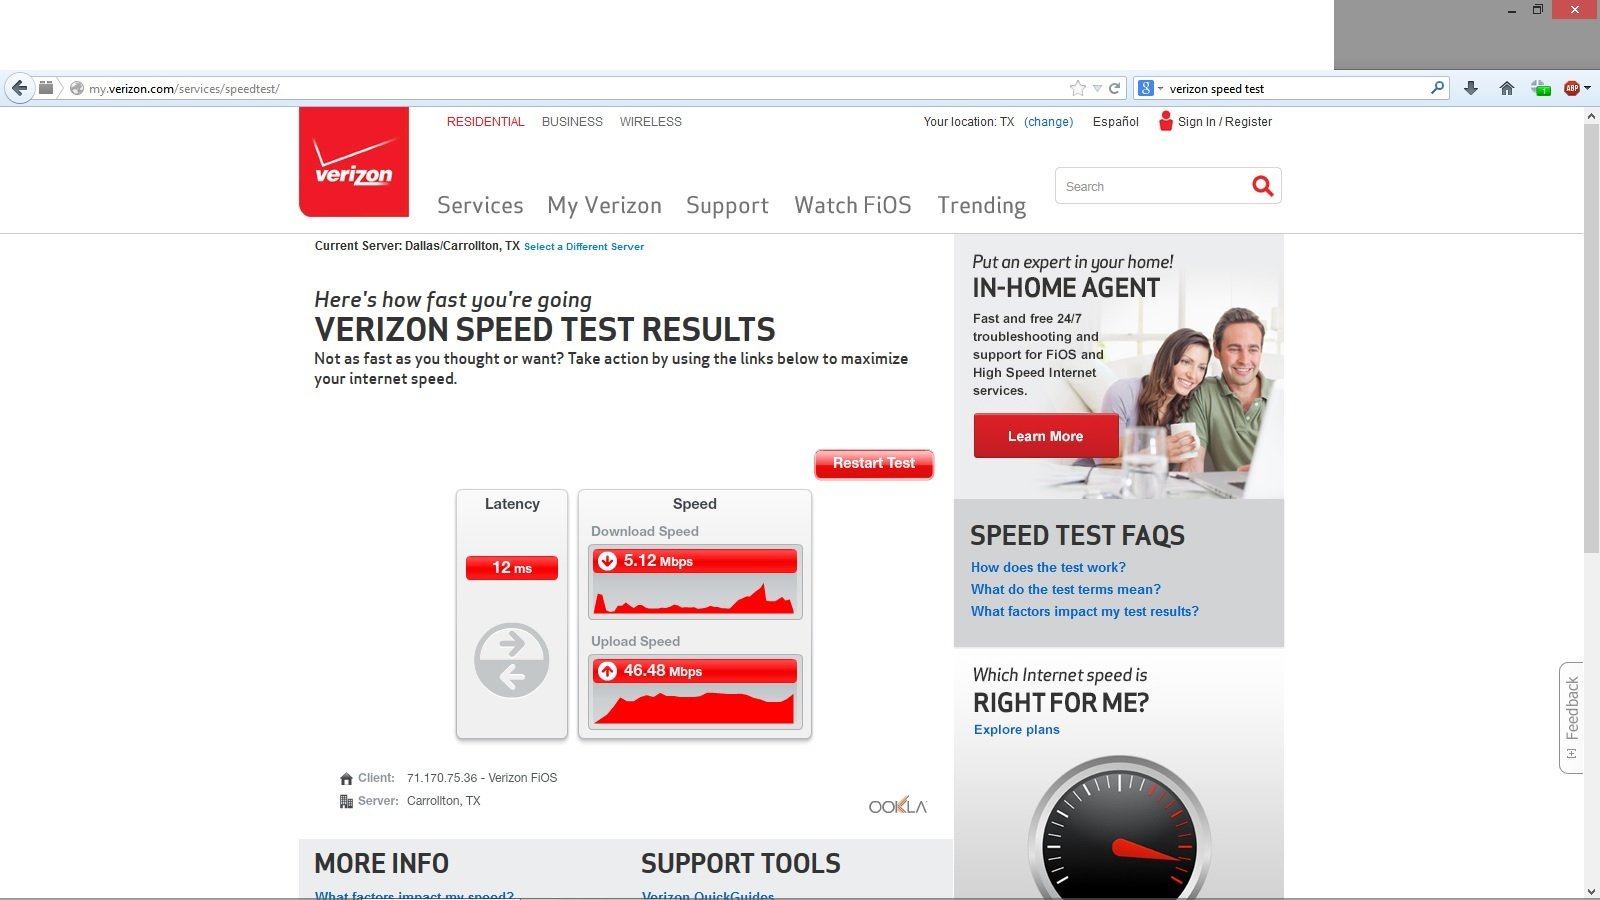 speed test 0119152020.jpg